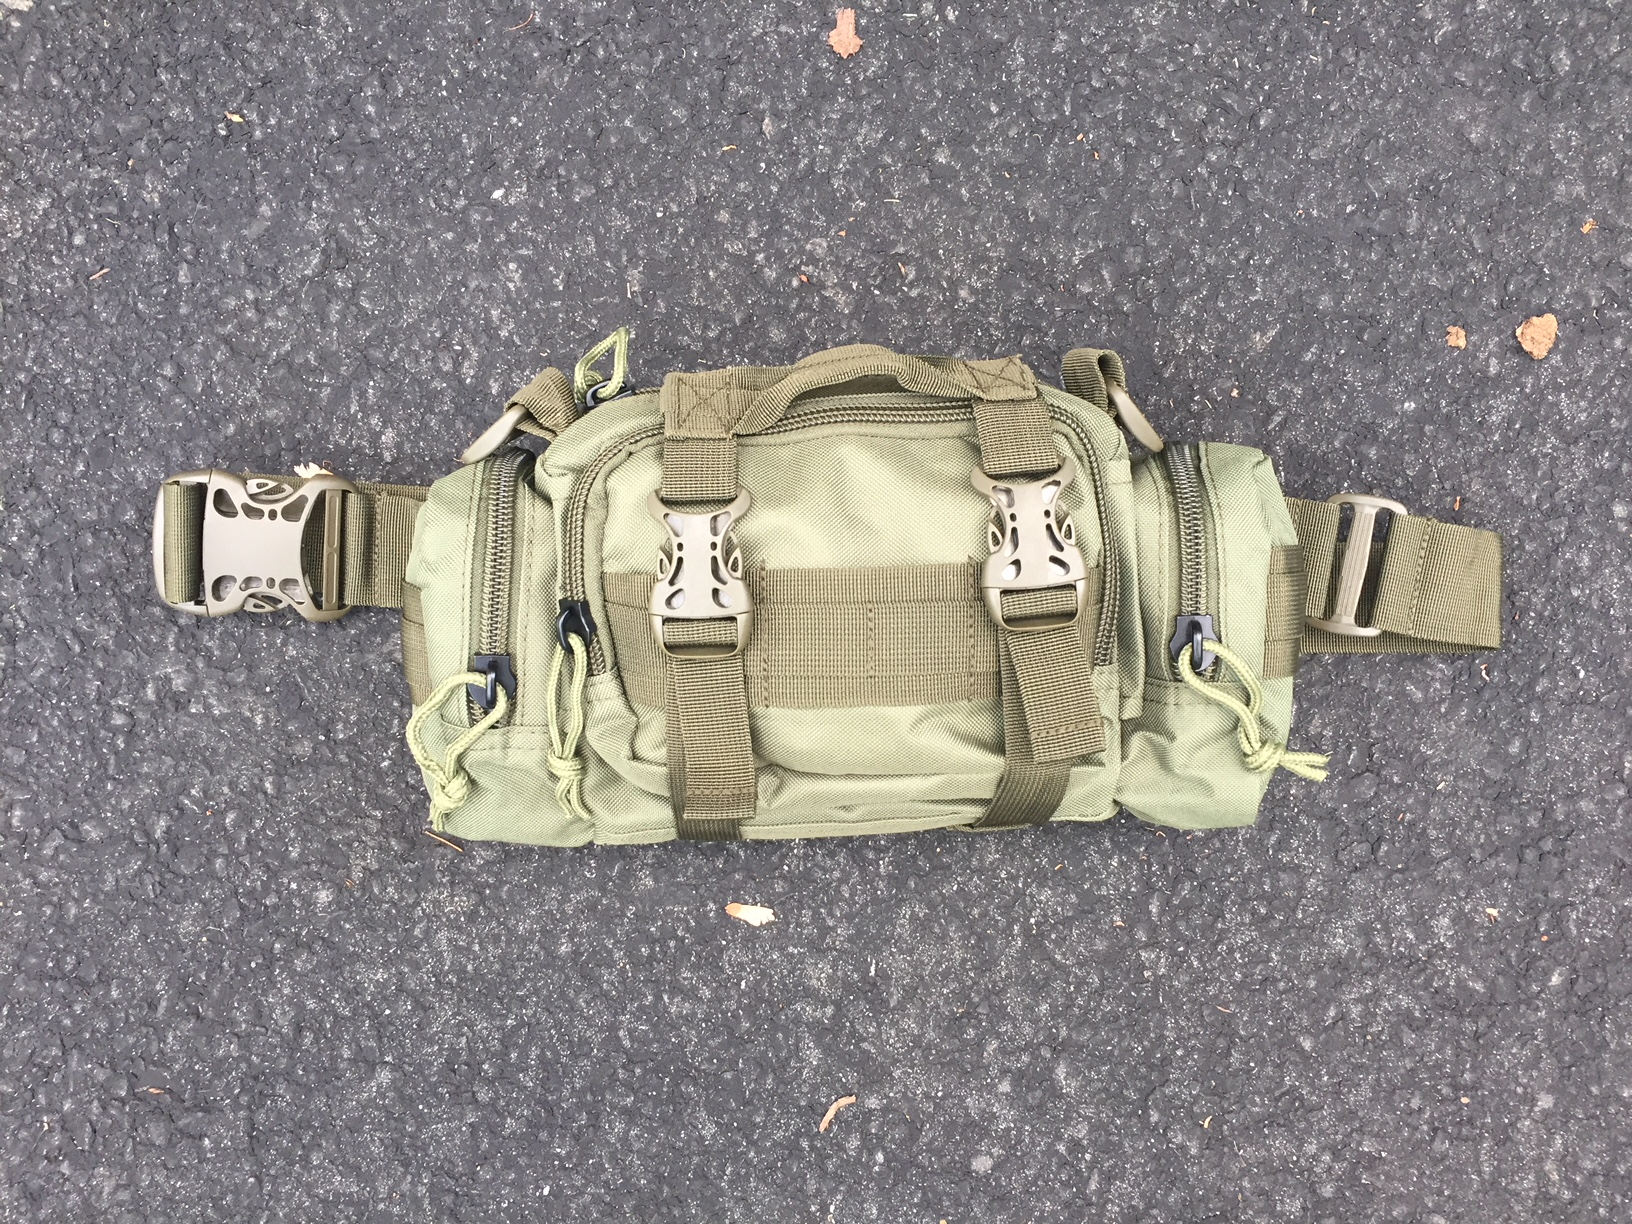 248f01d116c1 First let s look at the comfort and fit of this pack. You may be carrying  this pack for days on end so you need something you can wear comfortably  that will ...